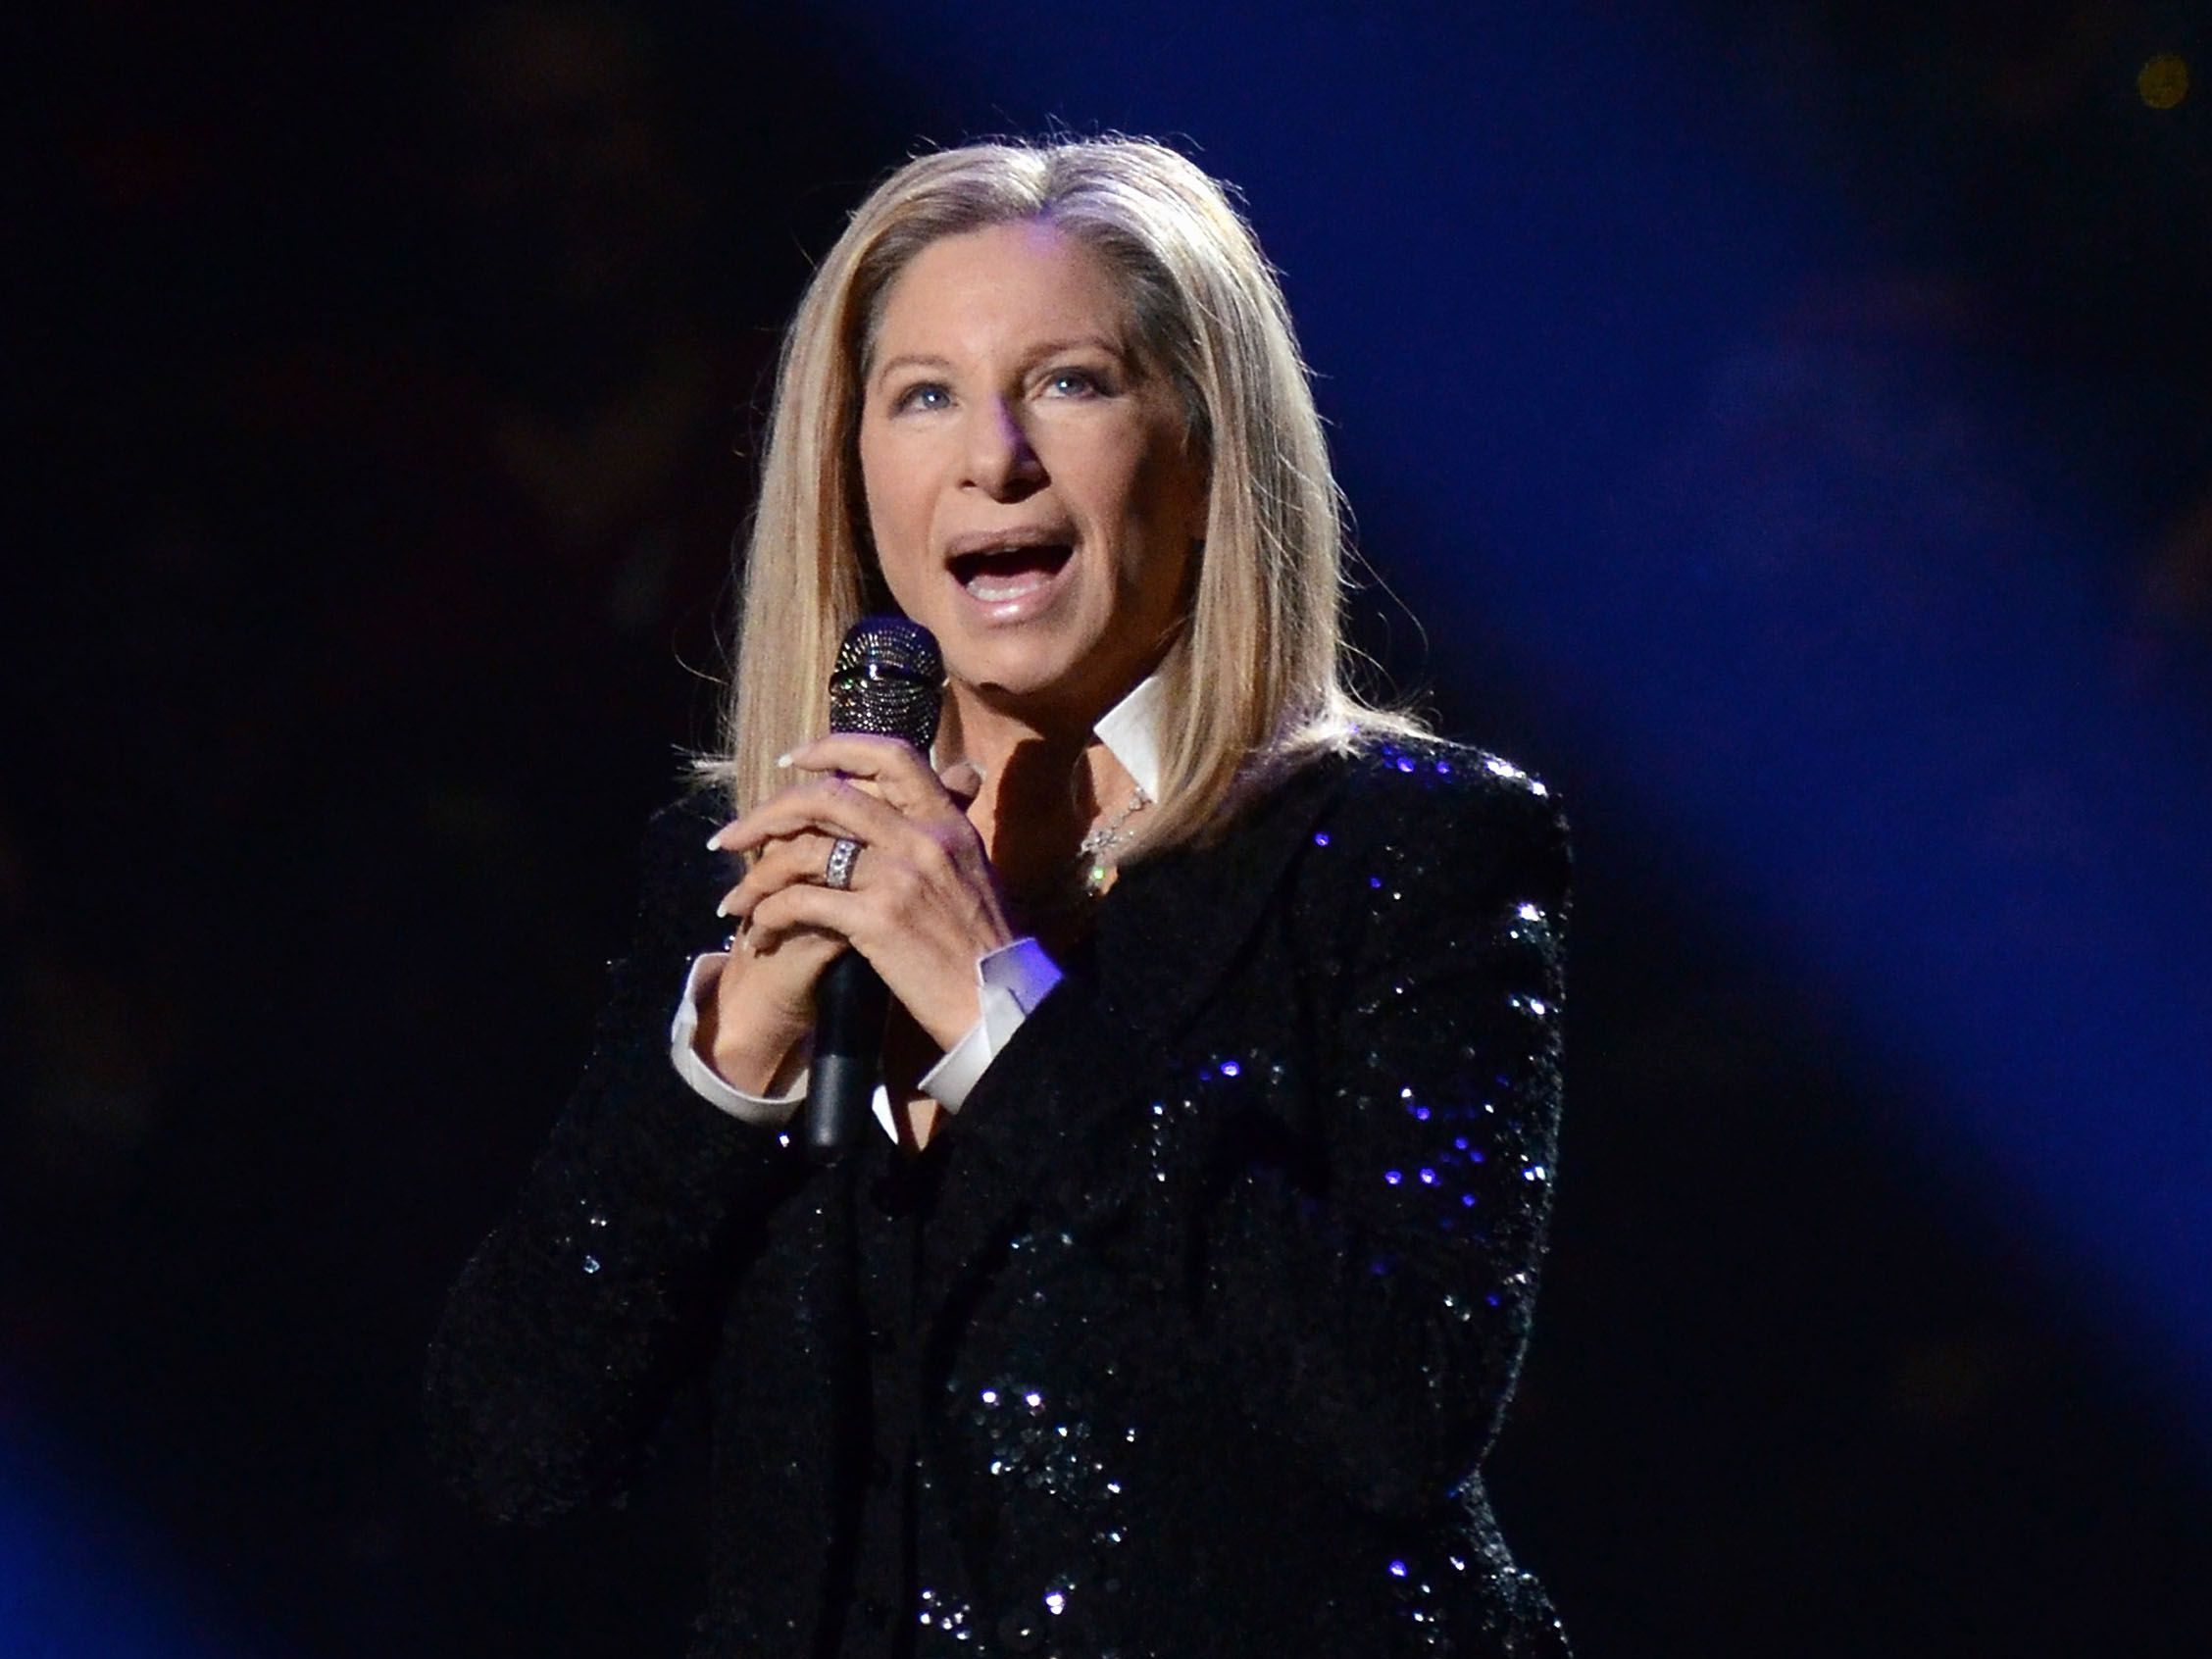 Barbara Streisand apologizes after saying Michael Jackson's 'sexual needs were his sexual needs'